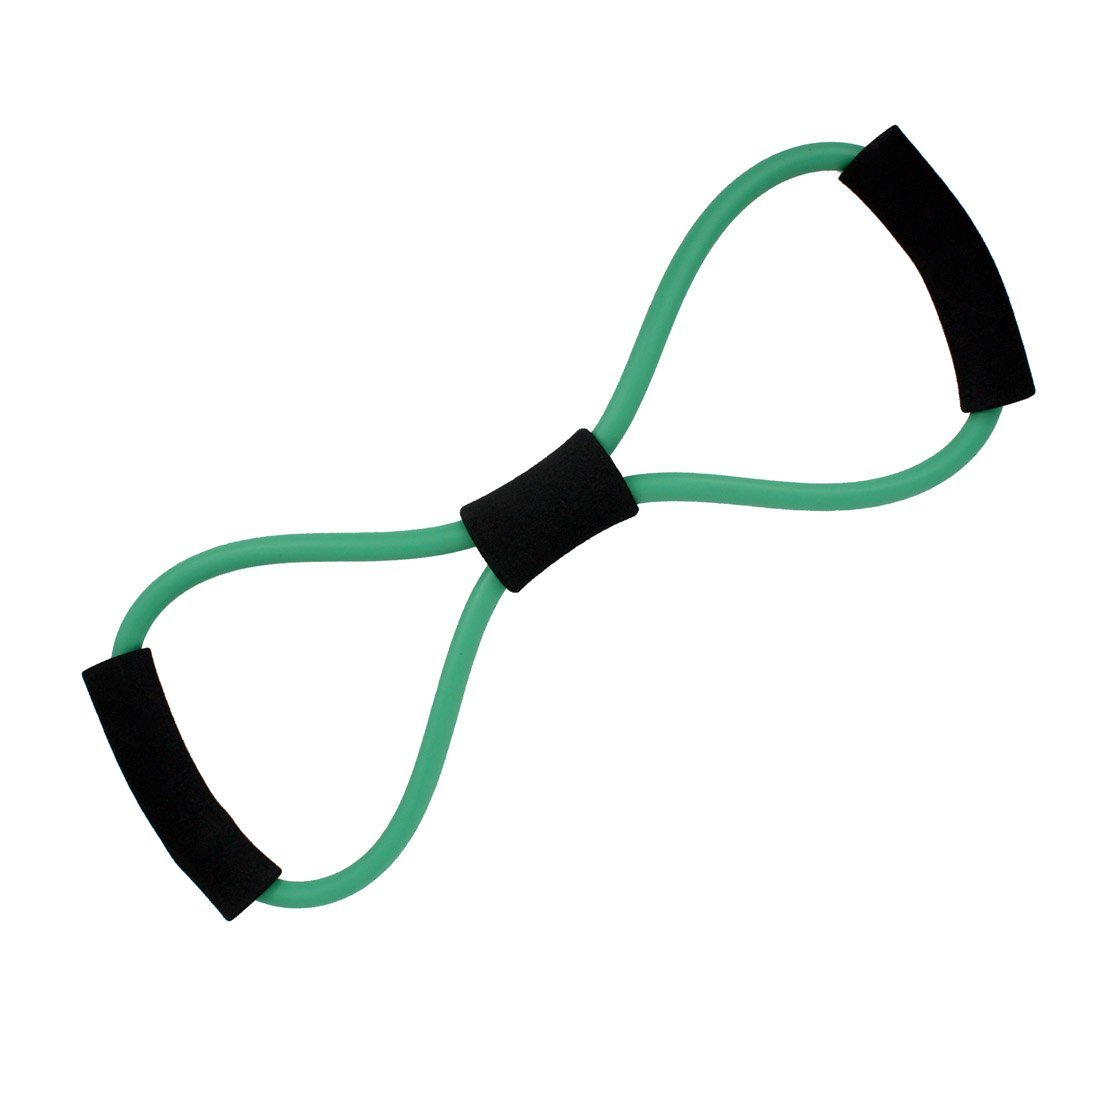 Balego™ Figure 8 Resistance Tubing, medium (green) 8 lbs.